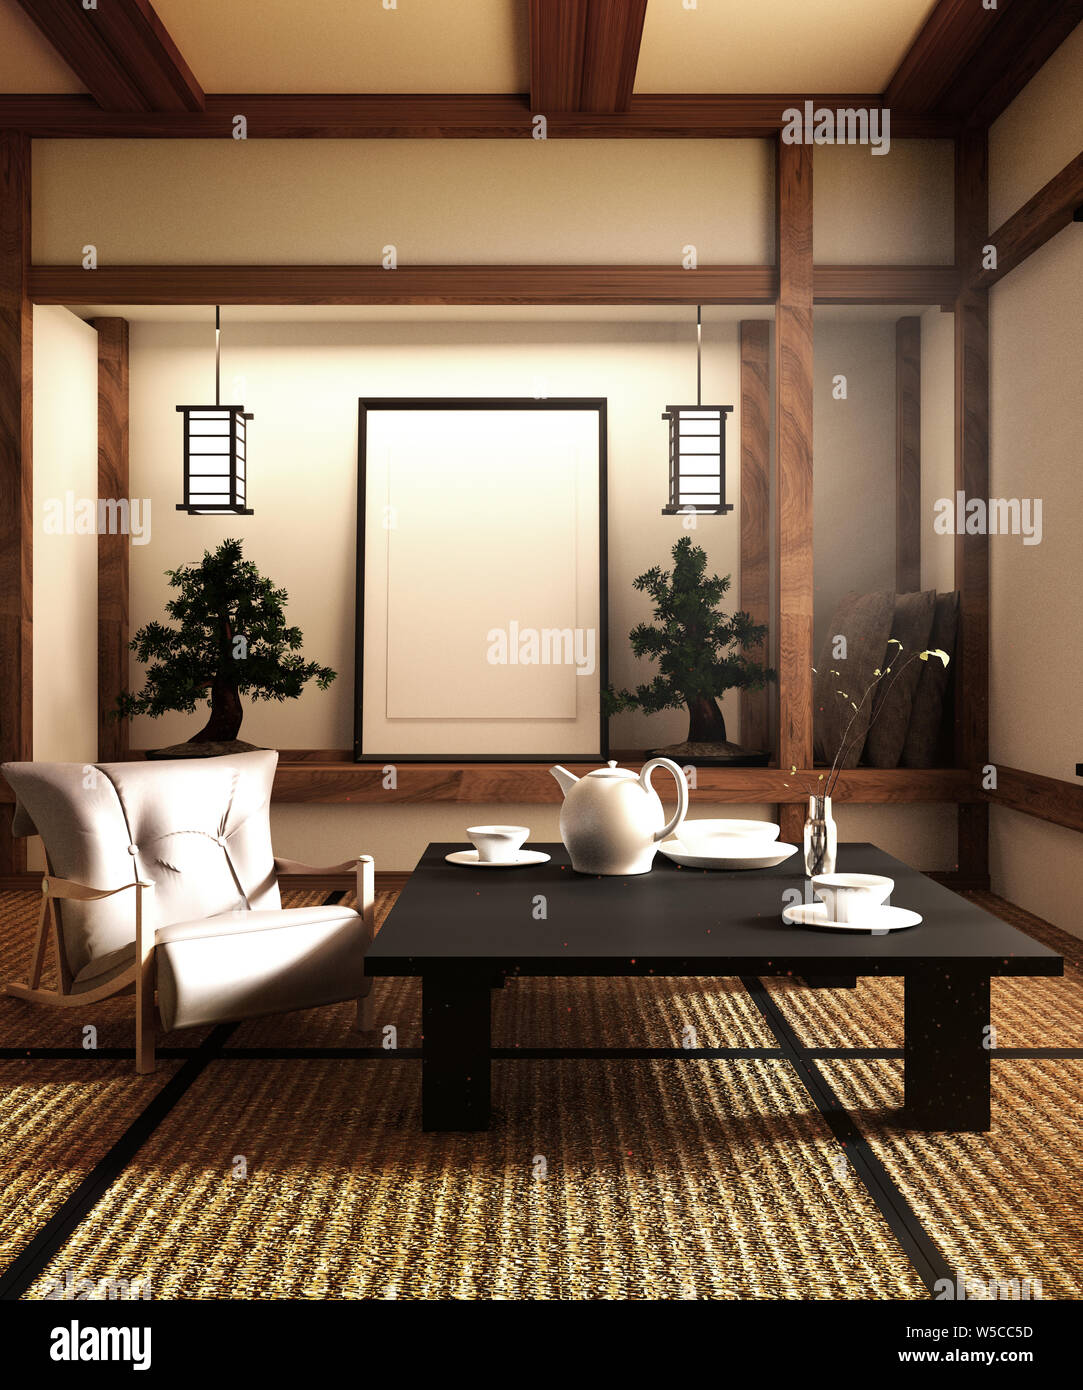 Japanese Style Living Room Stock Photos & Japanese Style ...